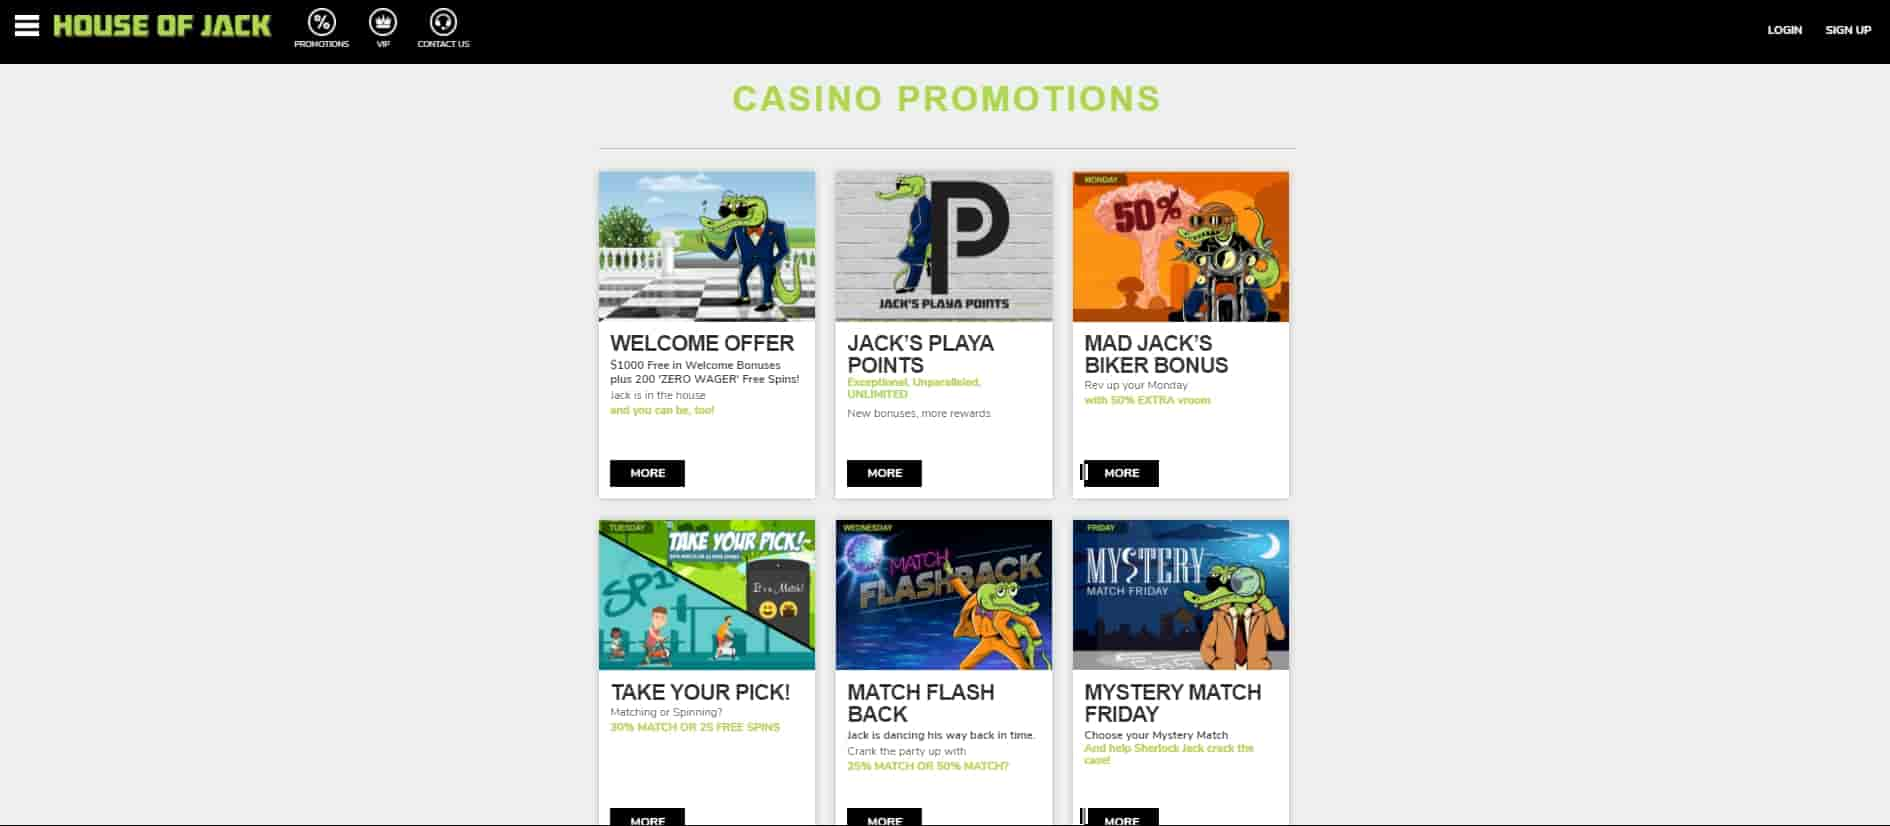 house of jack Online Casino Promotions